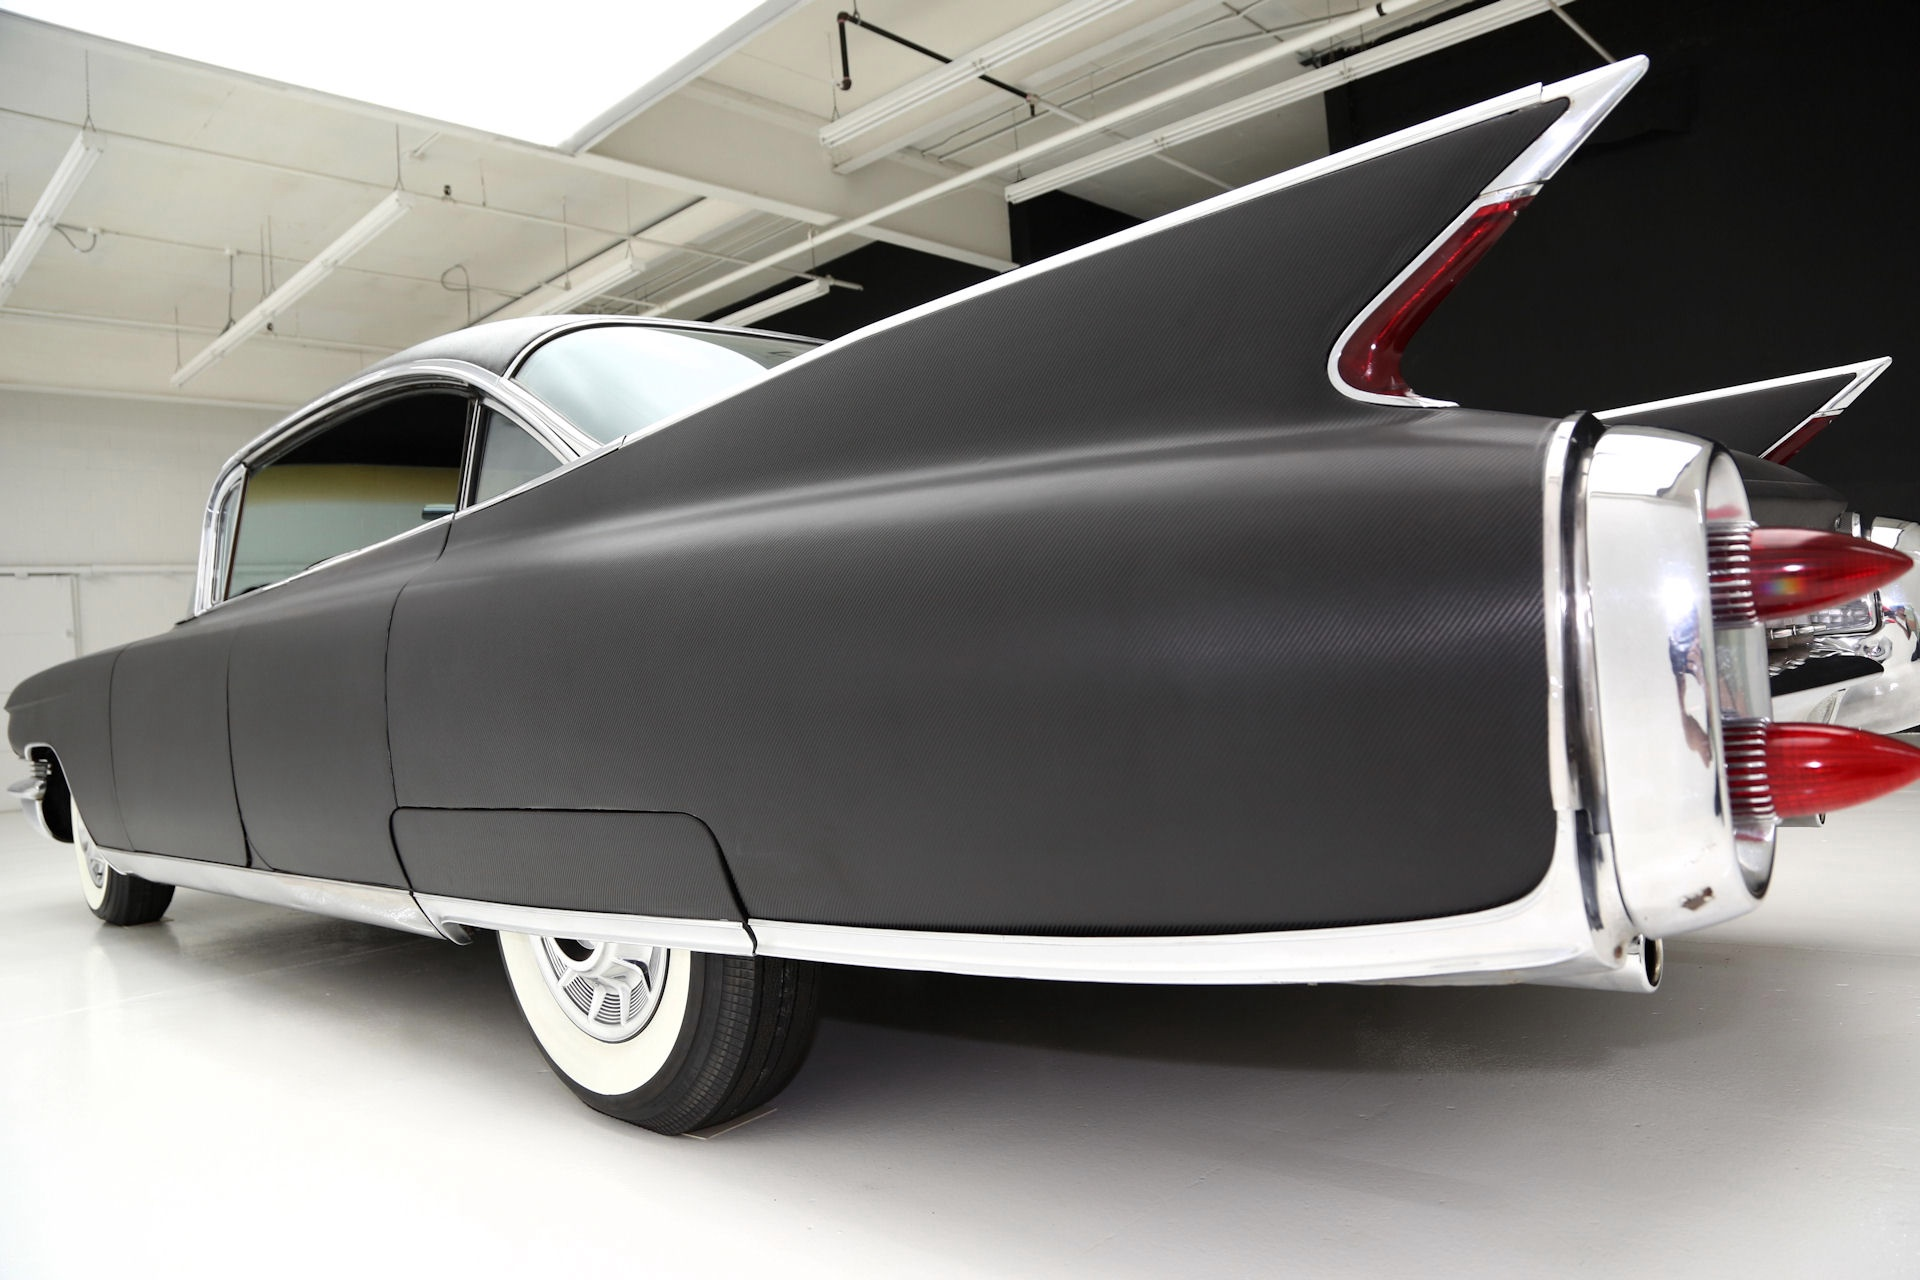 1960 Cadillac Fleetwood V8 1 Of 1 Carbon Caddy American Dream Machines Classic Cars Muscle